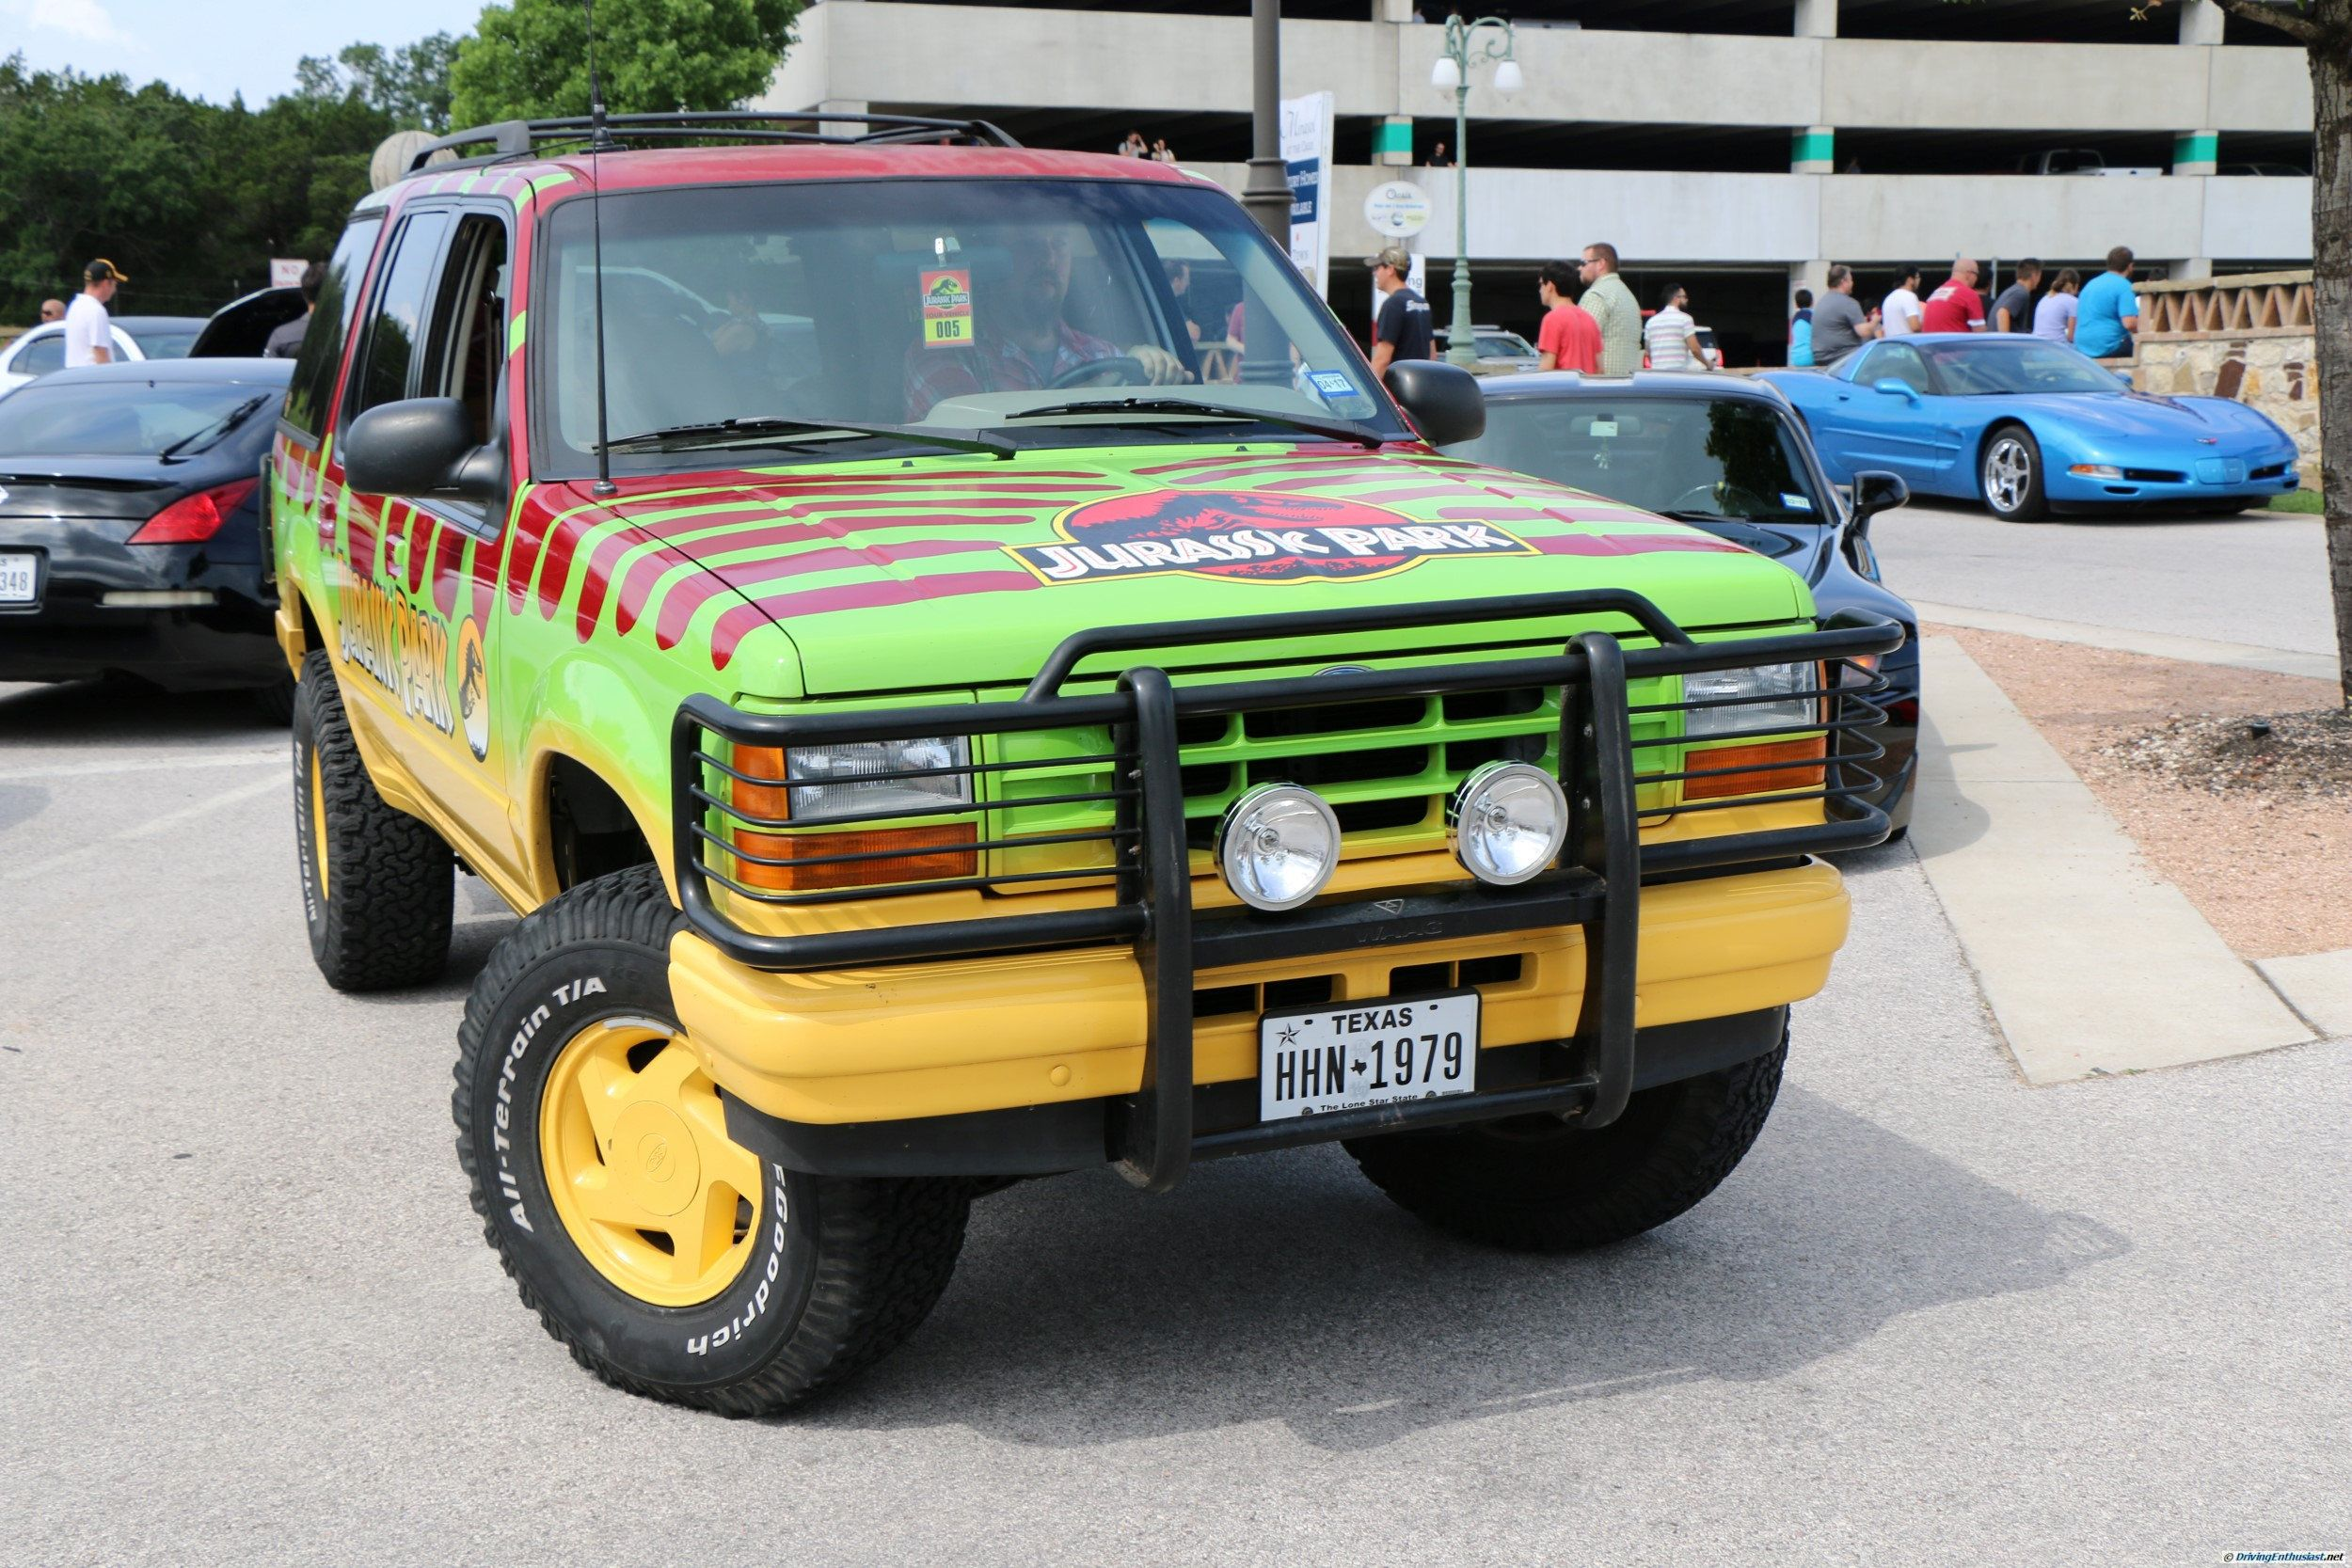 Ford Explorer in Jurassic Park movie dress. As seen at the June 2016 Cars and Coffee show in Austin TX USA.